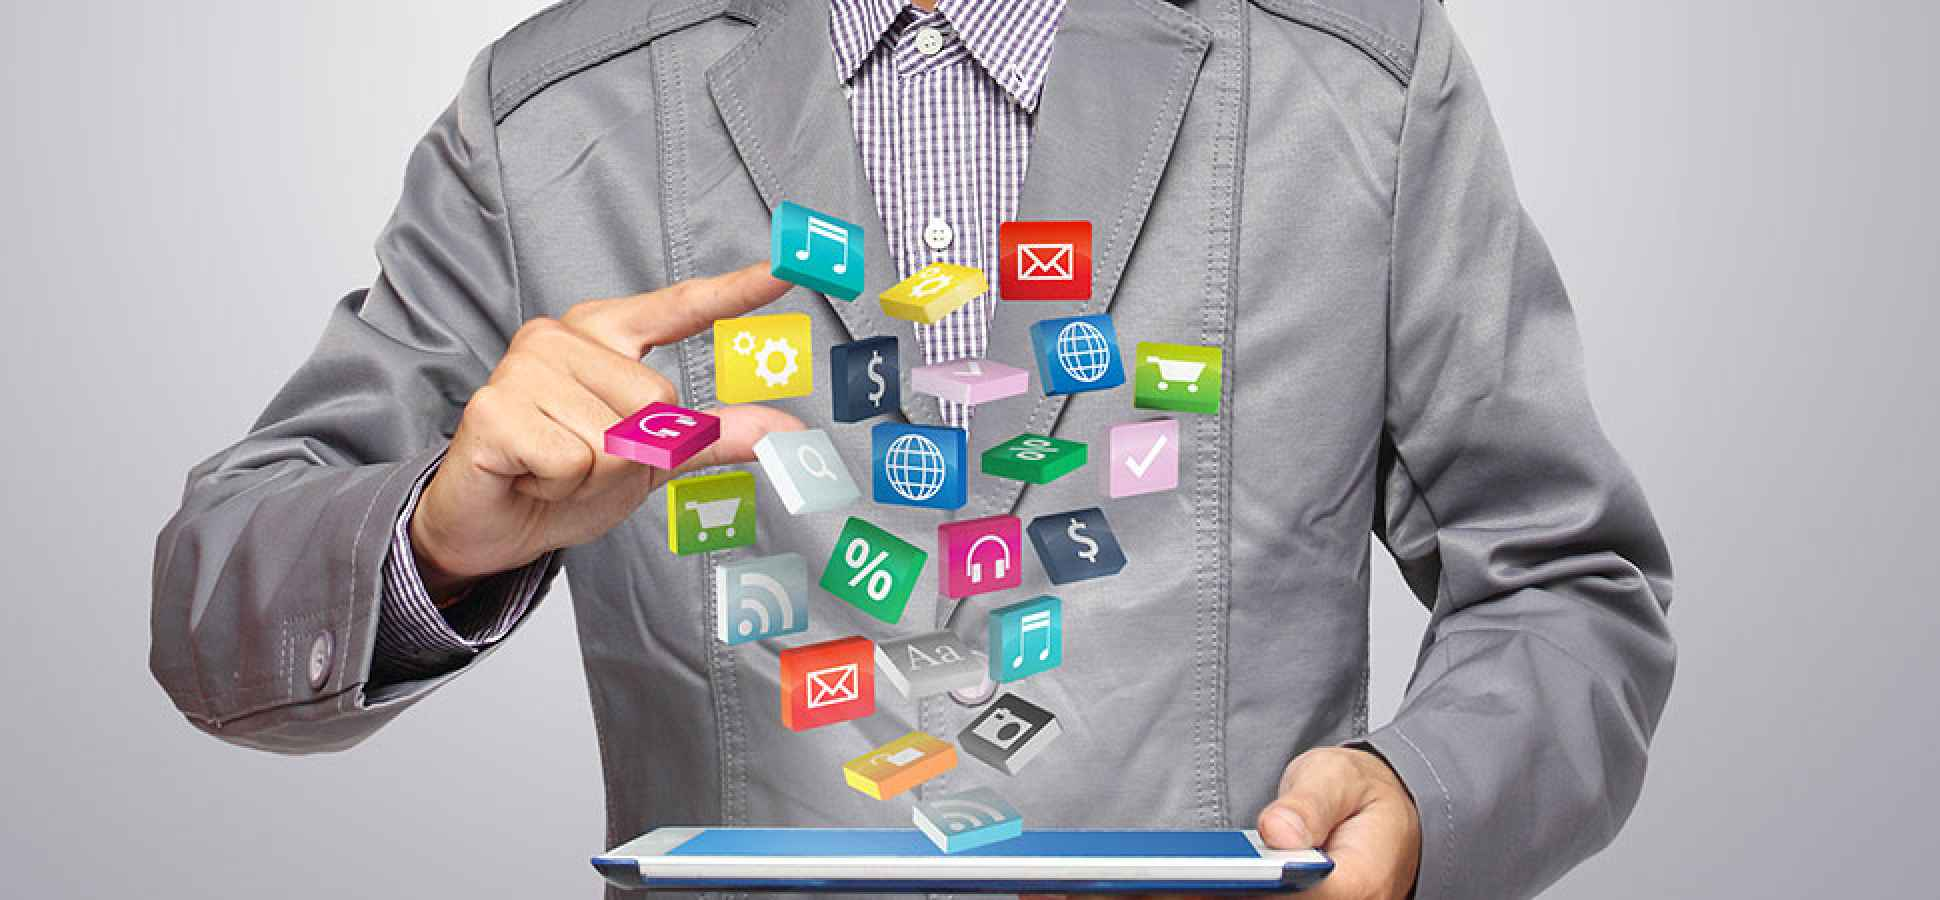 10 Apps That Make Managing Projects Remotely a Breeze